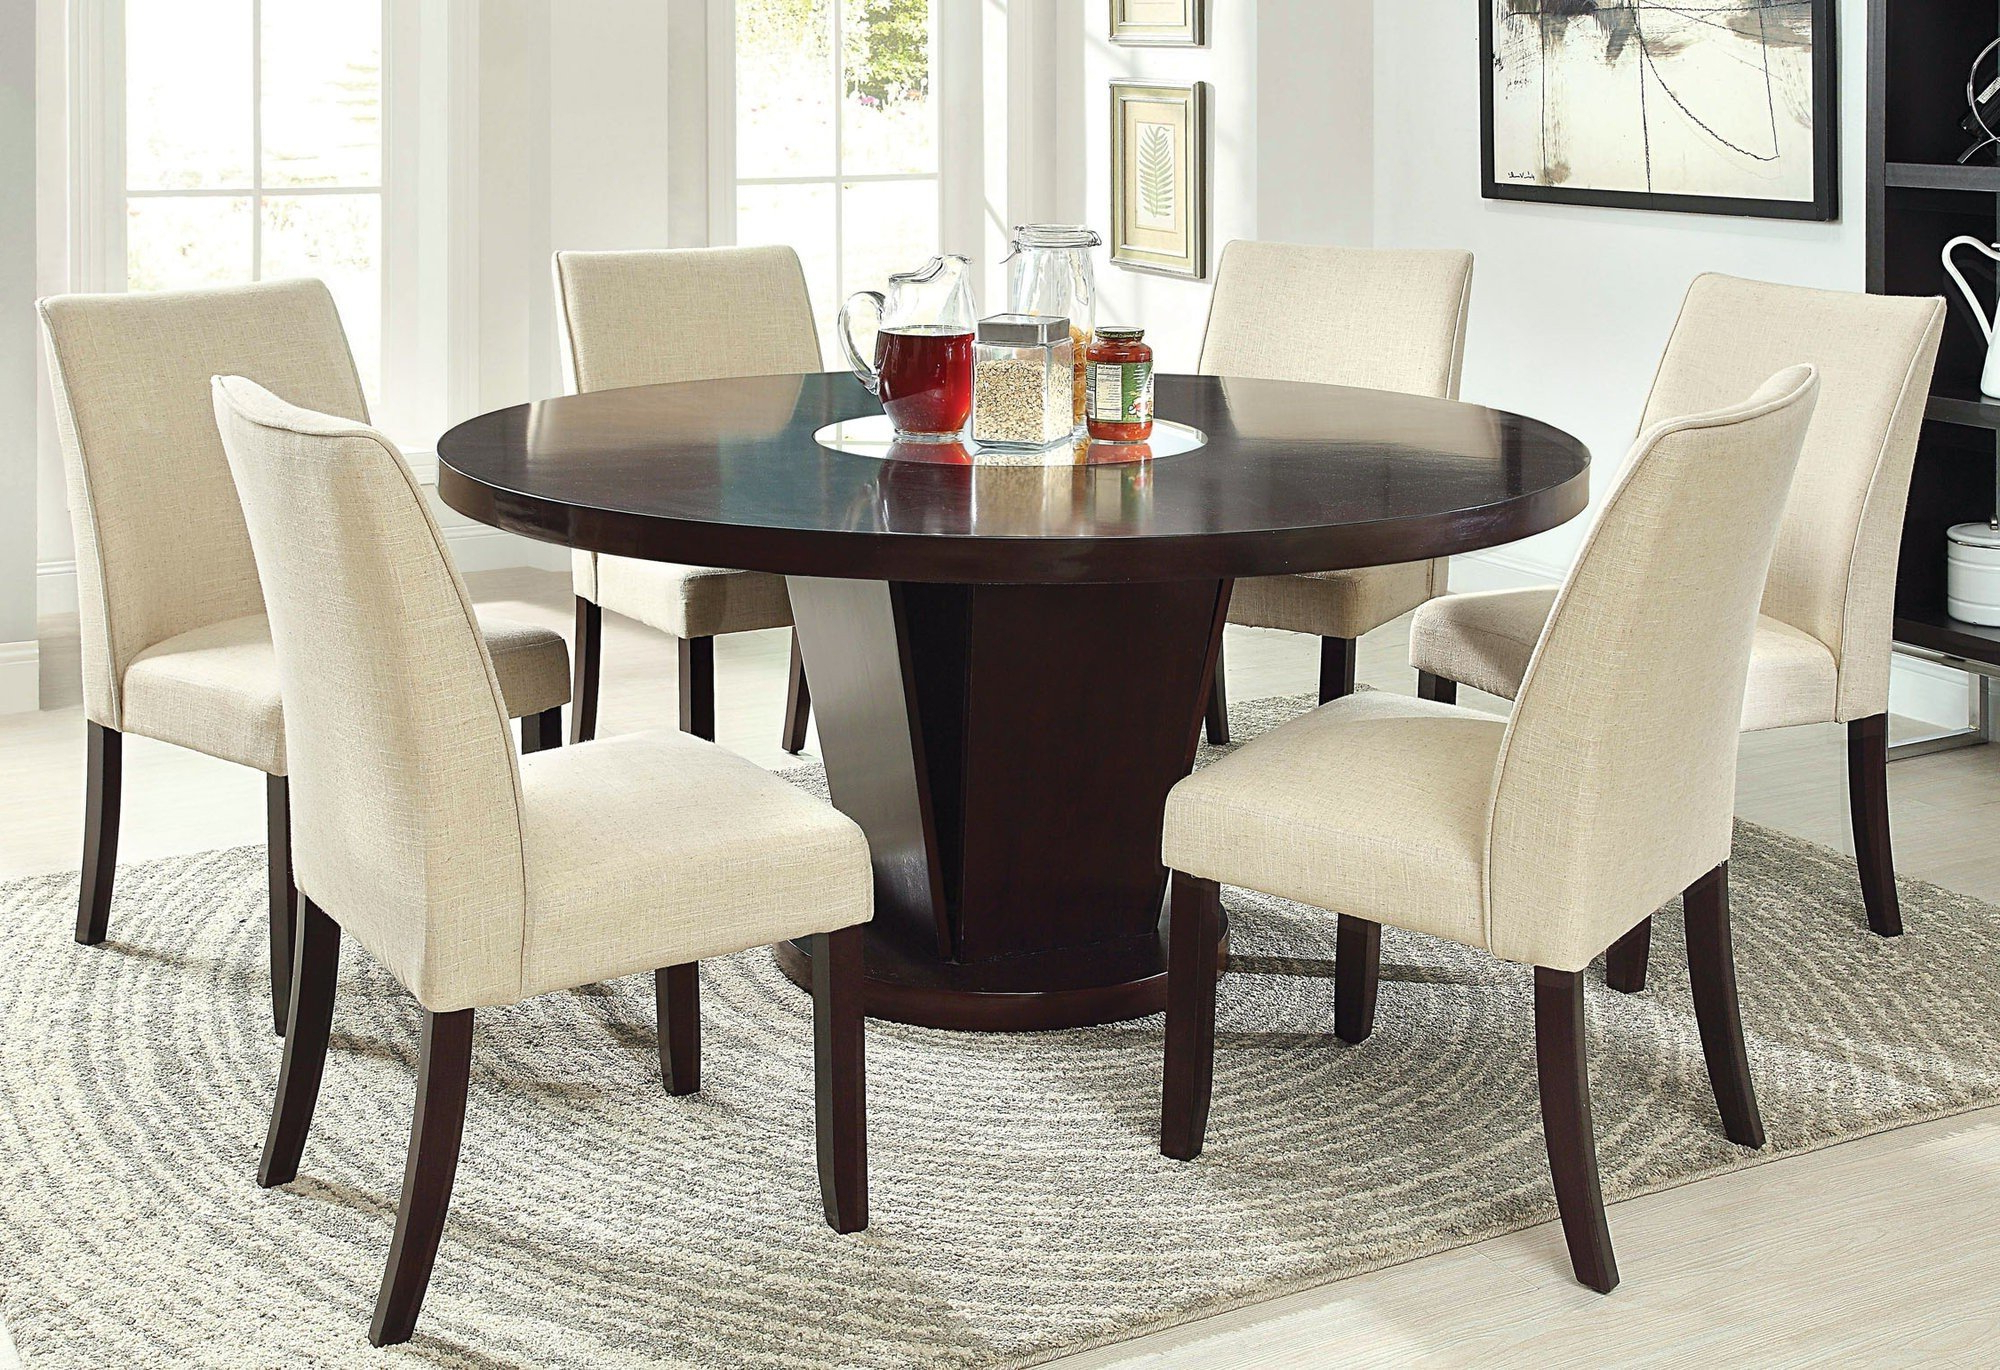 50+ Round Dining Table For 6 You'll Love In 2020 - Visual Hunt regarding Fashionable Medium Elegant Dining Tables